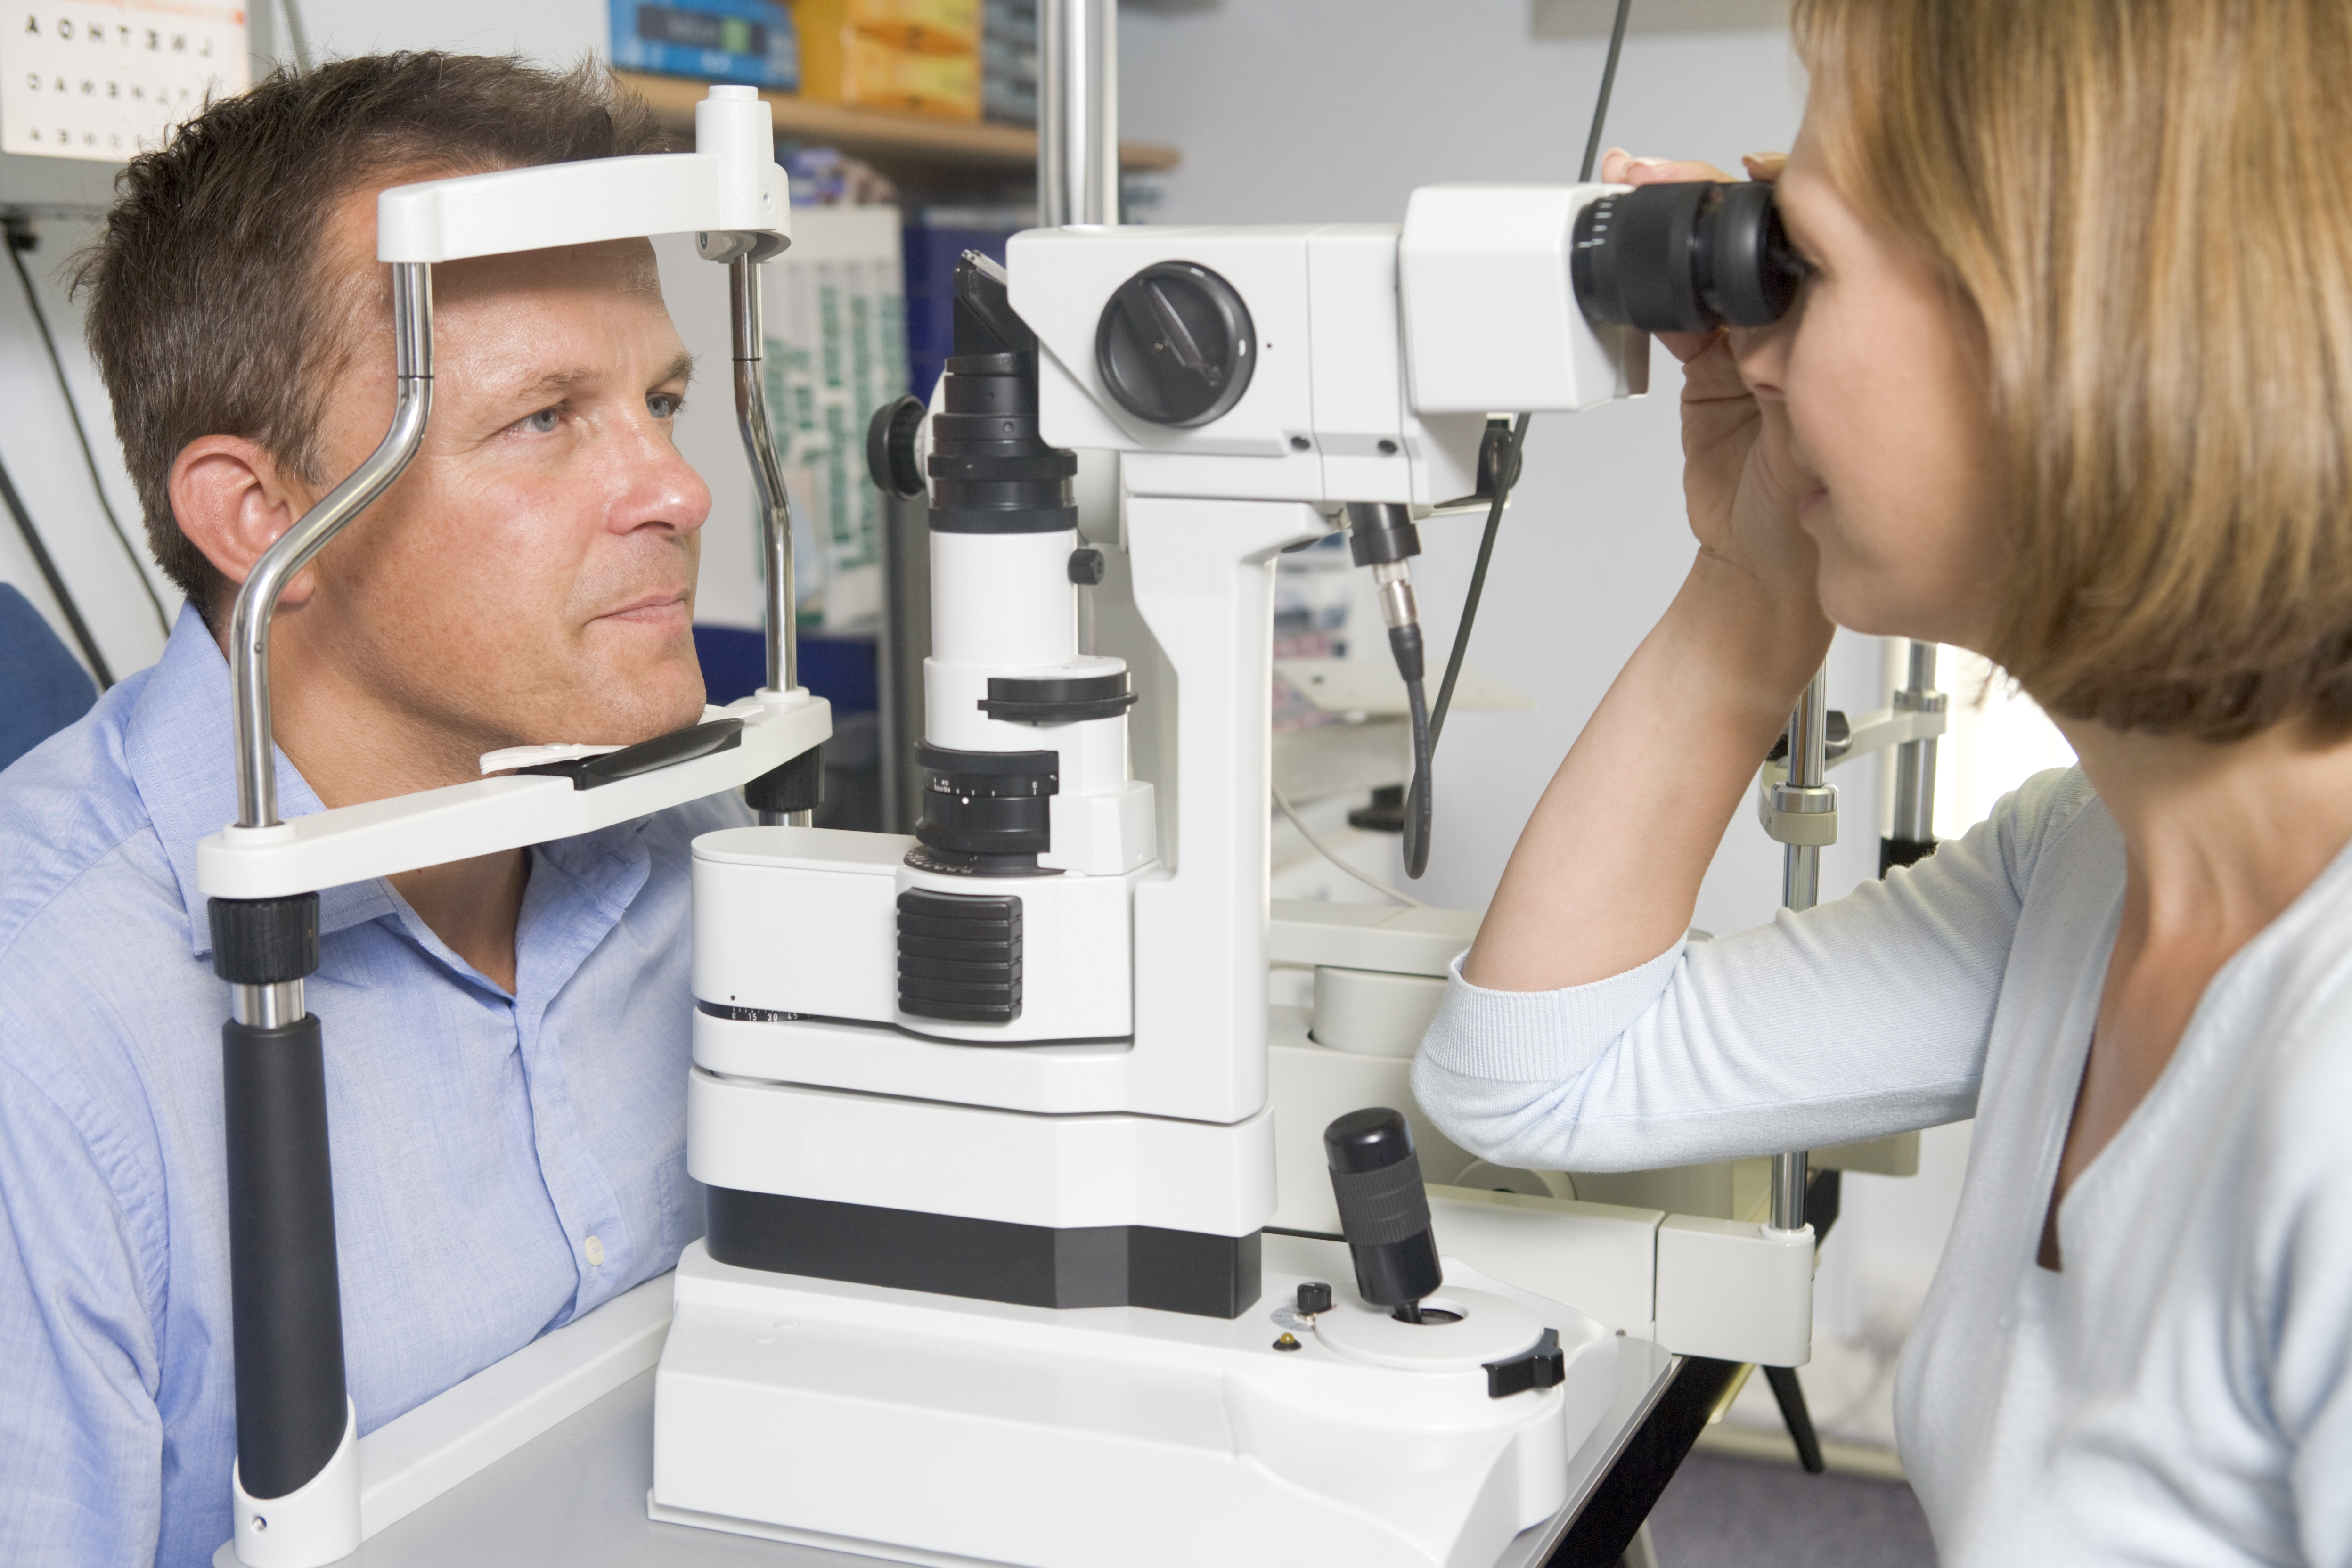 Bigstock_ 58477976 - Optometrist In Exam Room With Man In Chair.jpg